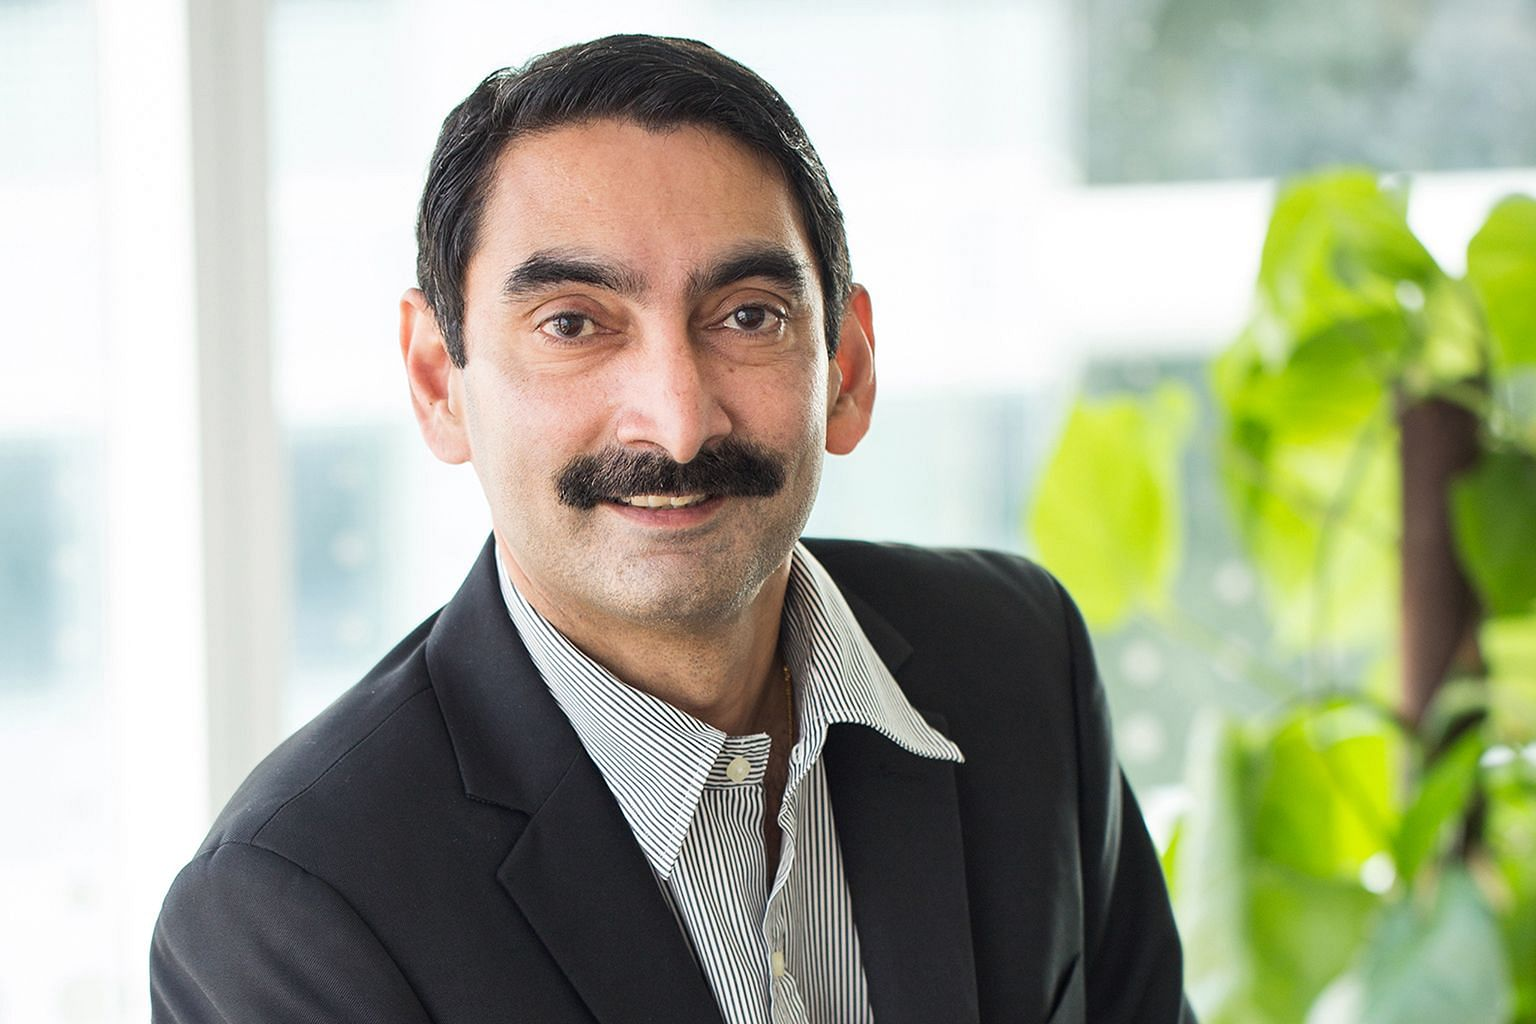 """Dr Thampuran is proud of how the work at A*Star and its dedicated team have grown the organisation to """"one of international standing"""". He has seen many of its young officers growing professionally to become leaders."""